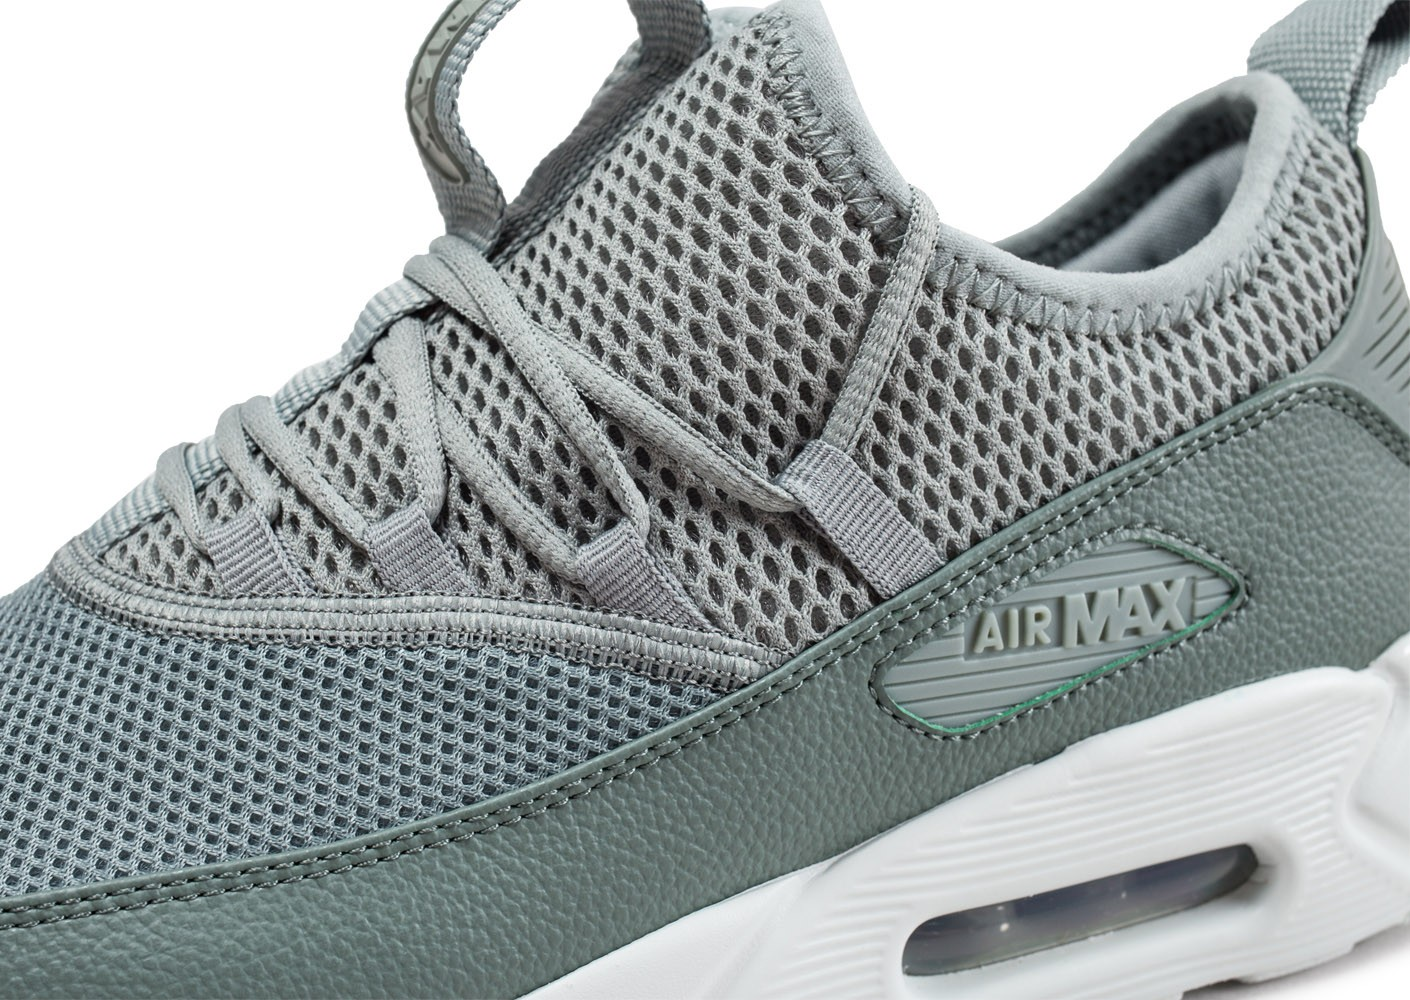 low priced 1473f 5aa57 ... Chaussures Nike Air Max 90 EZ verte vue dessus